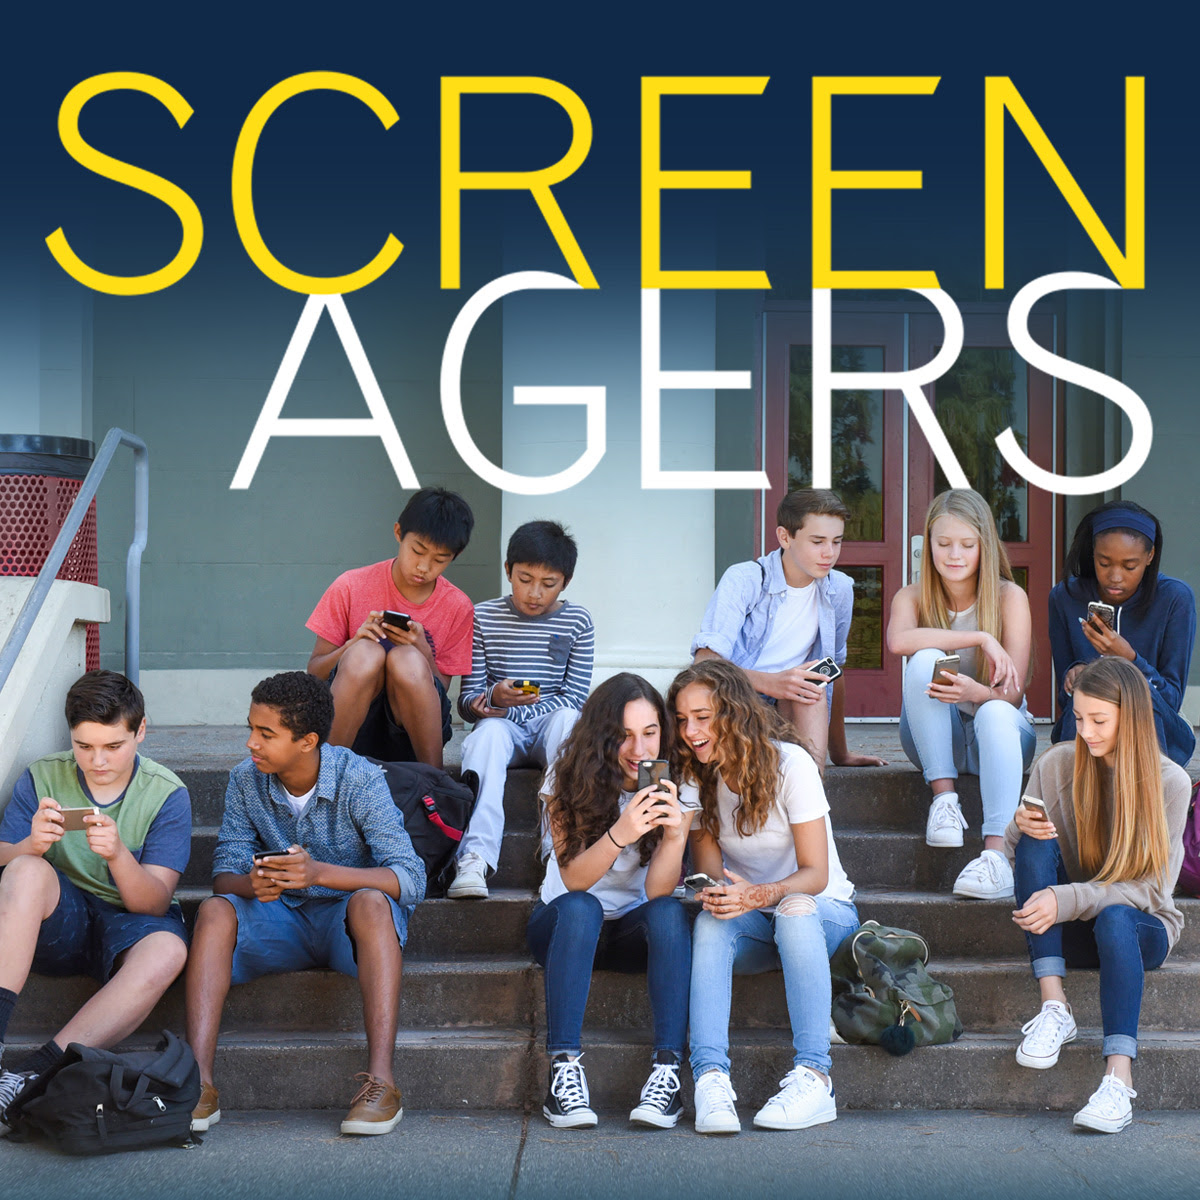 Screenagers Film Presented By Sheridan Youth Assistance, Sheridan Community Schools and Indiana State Police